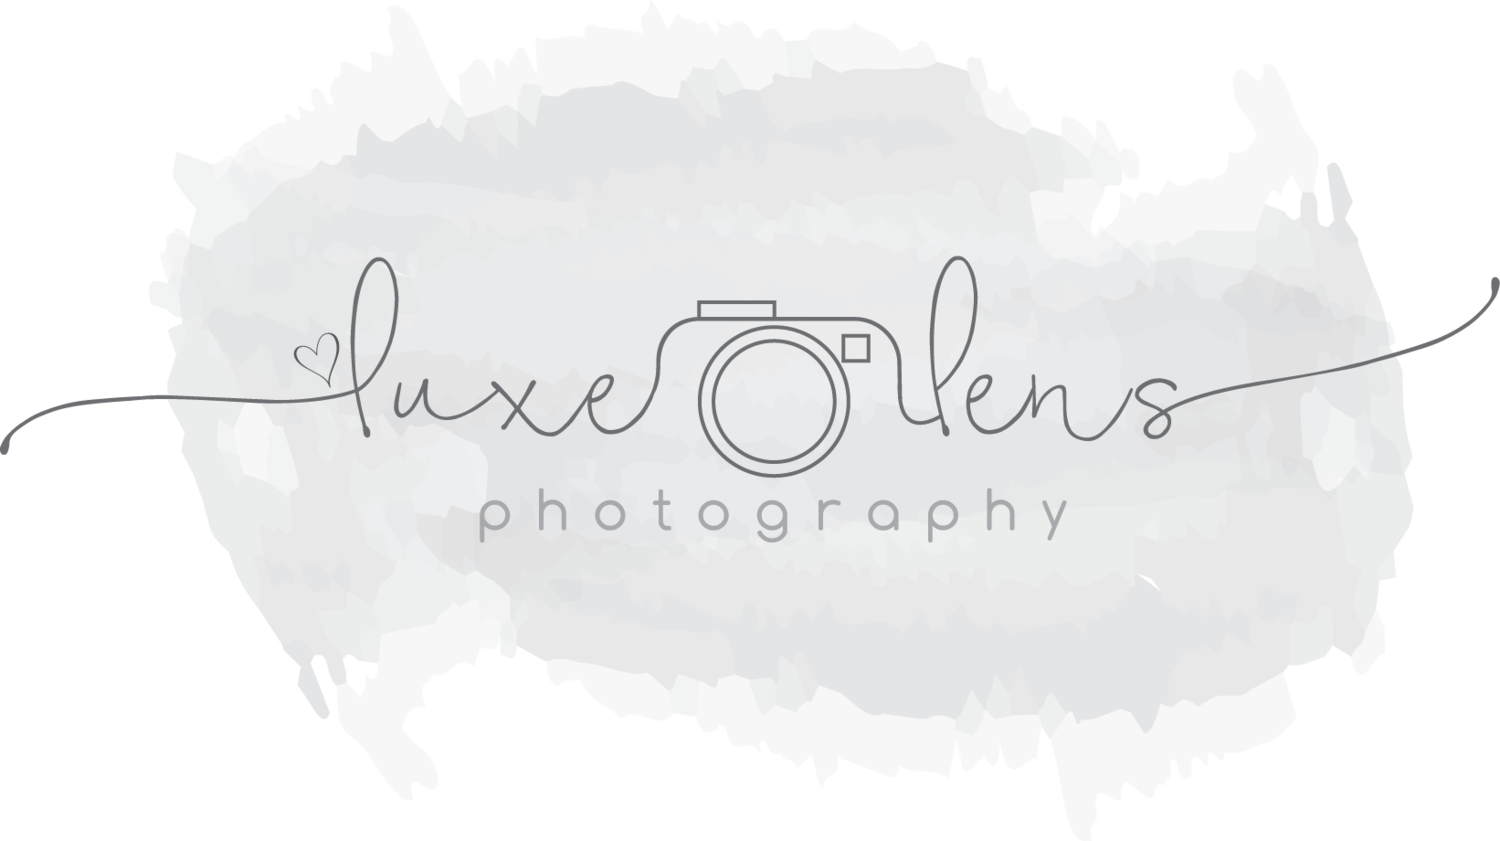 Luxe Lens Photography